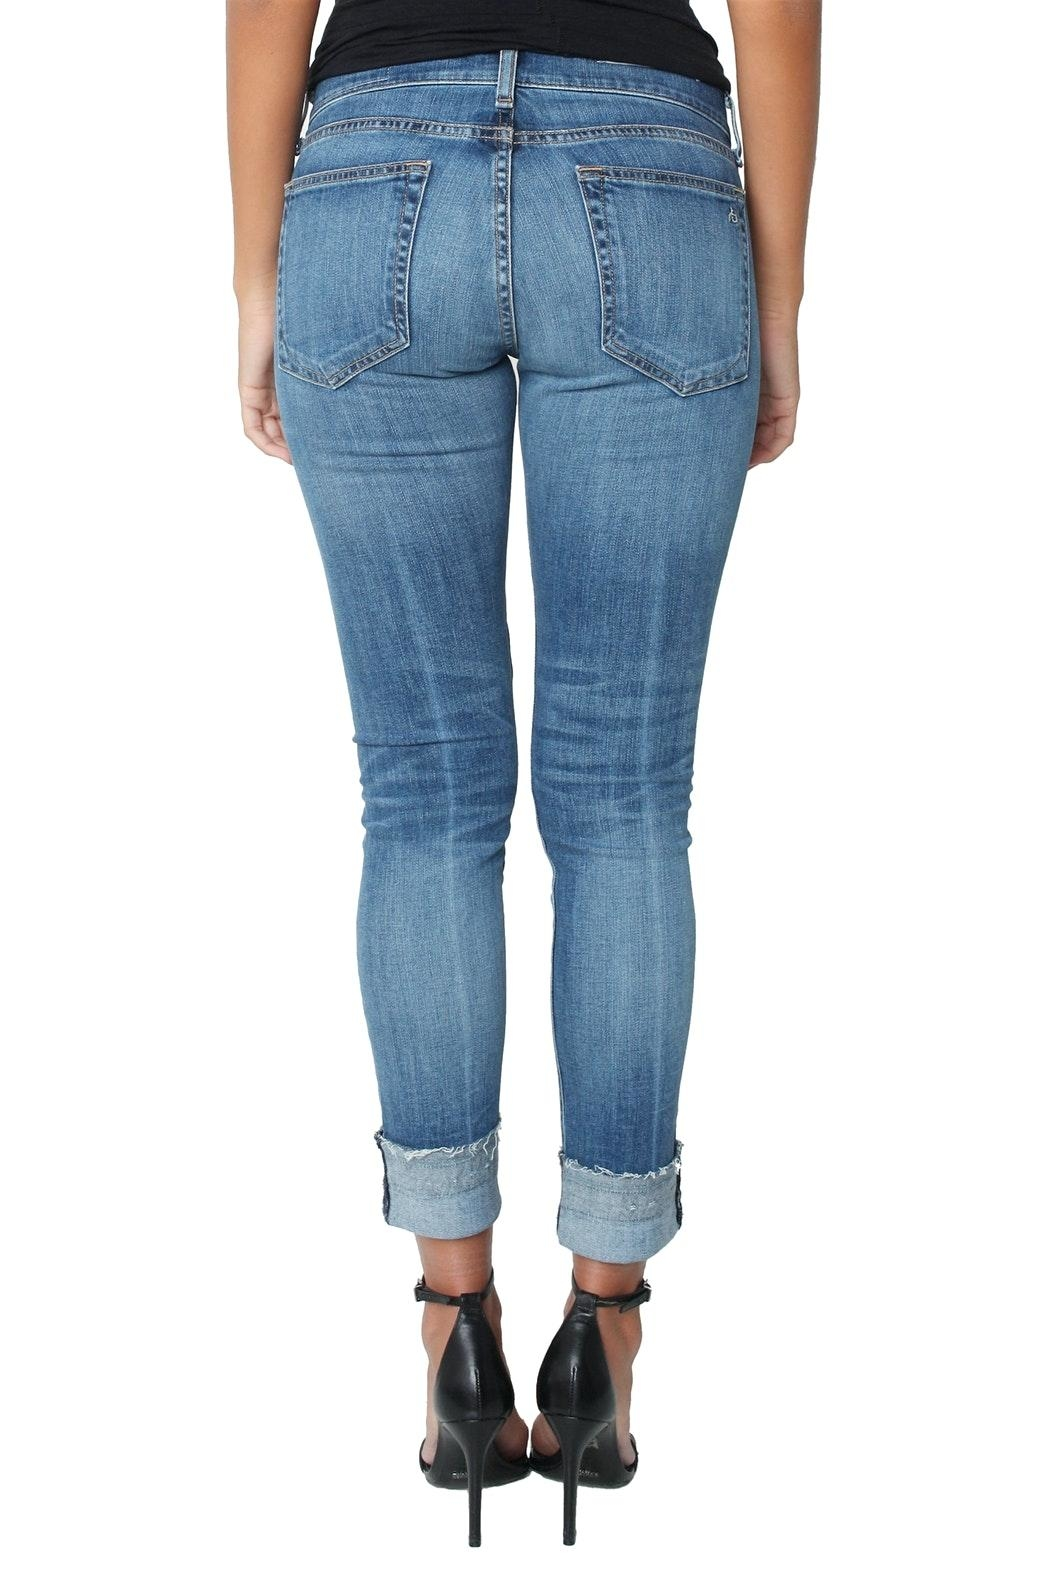 Rag & Bone Dre Coopers Jeans - Back Cropped Image